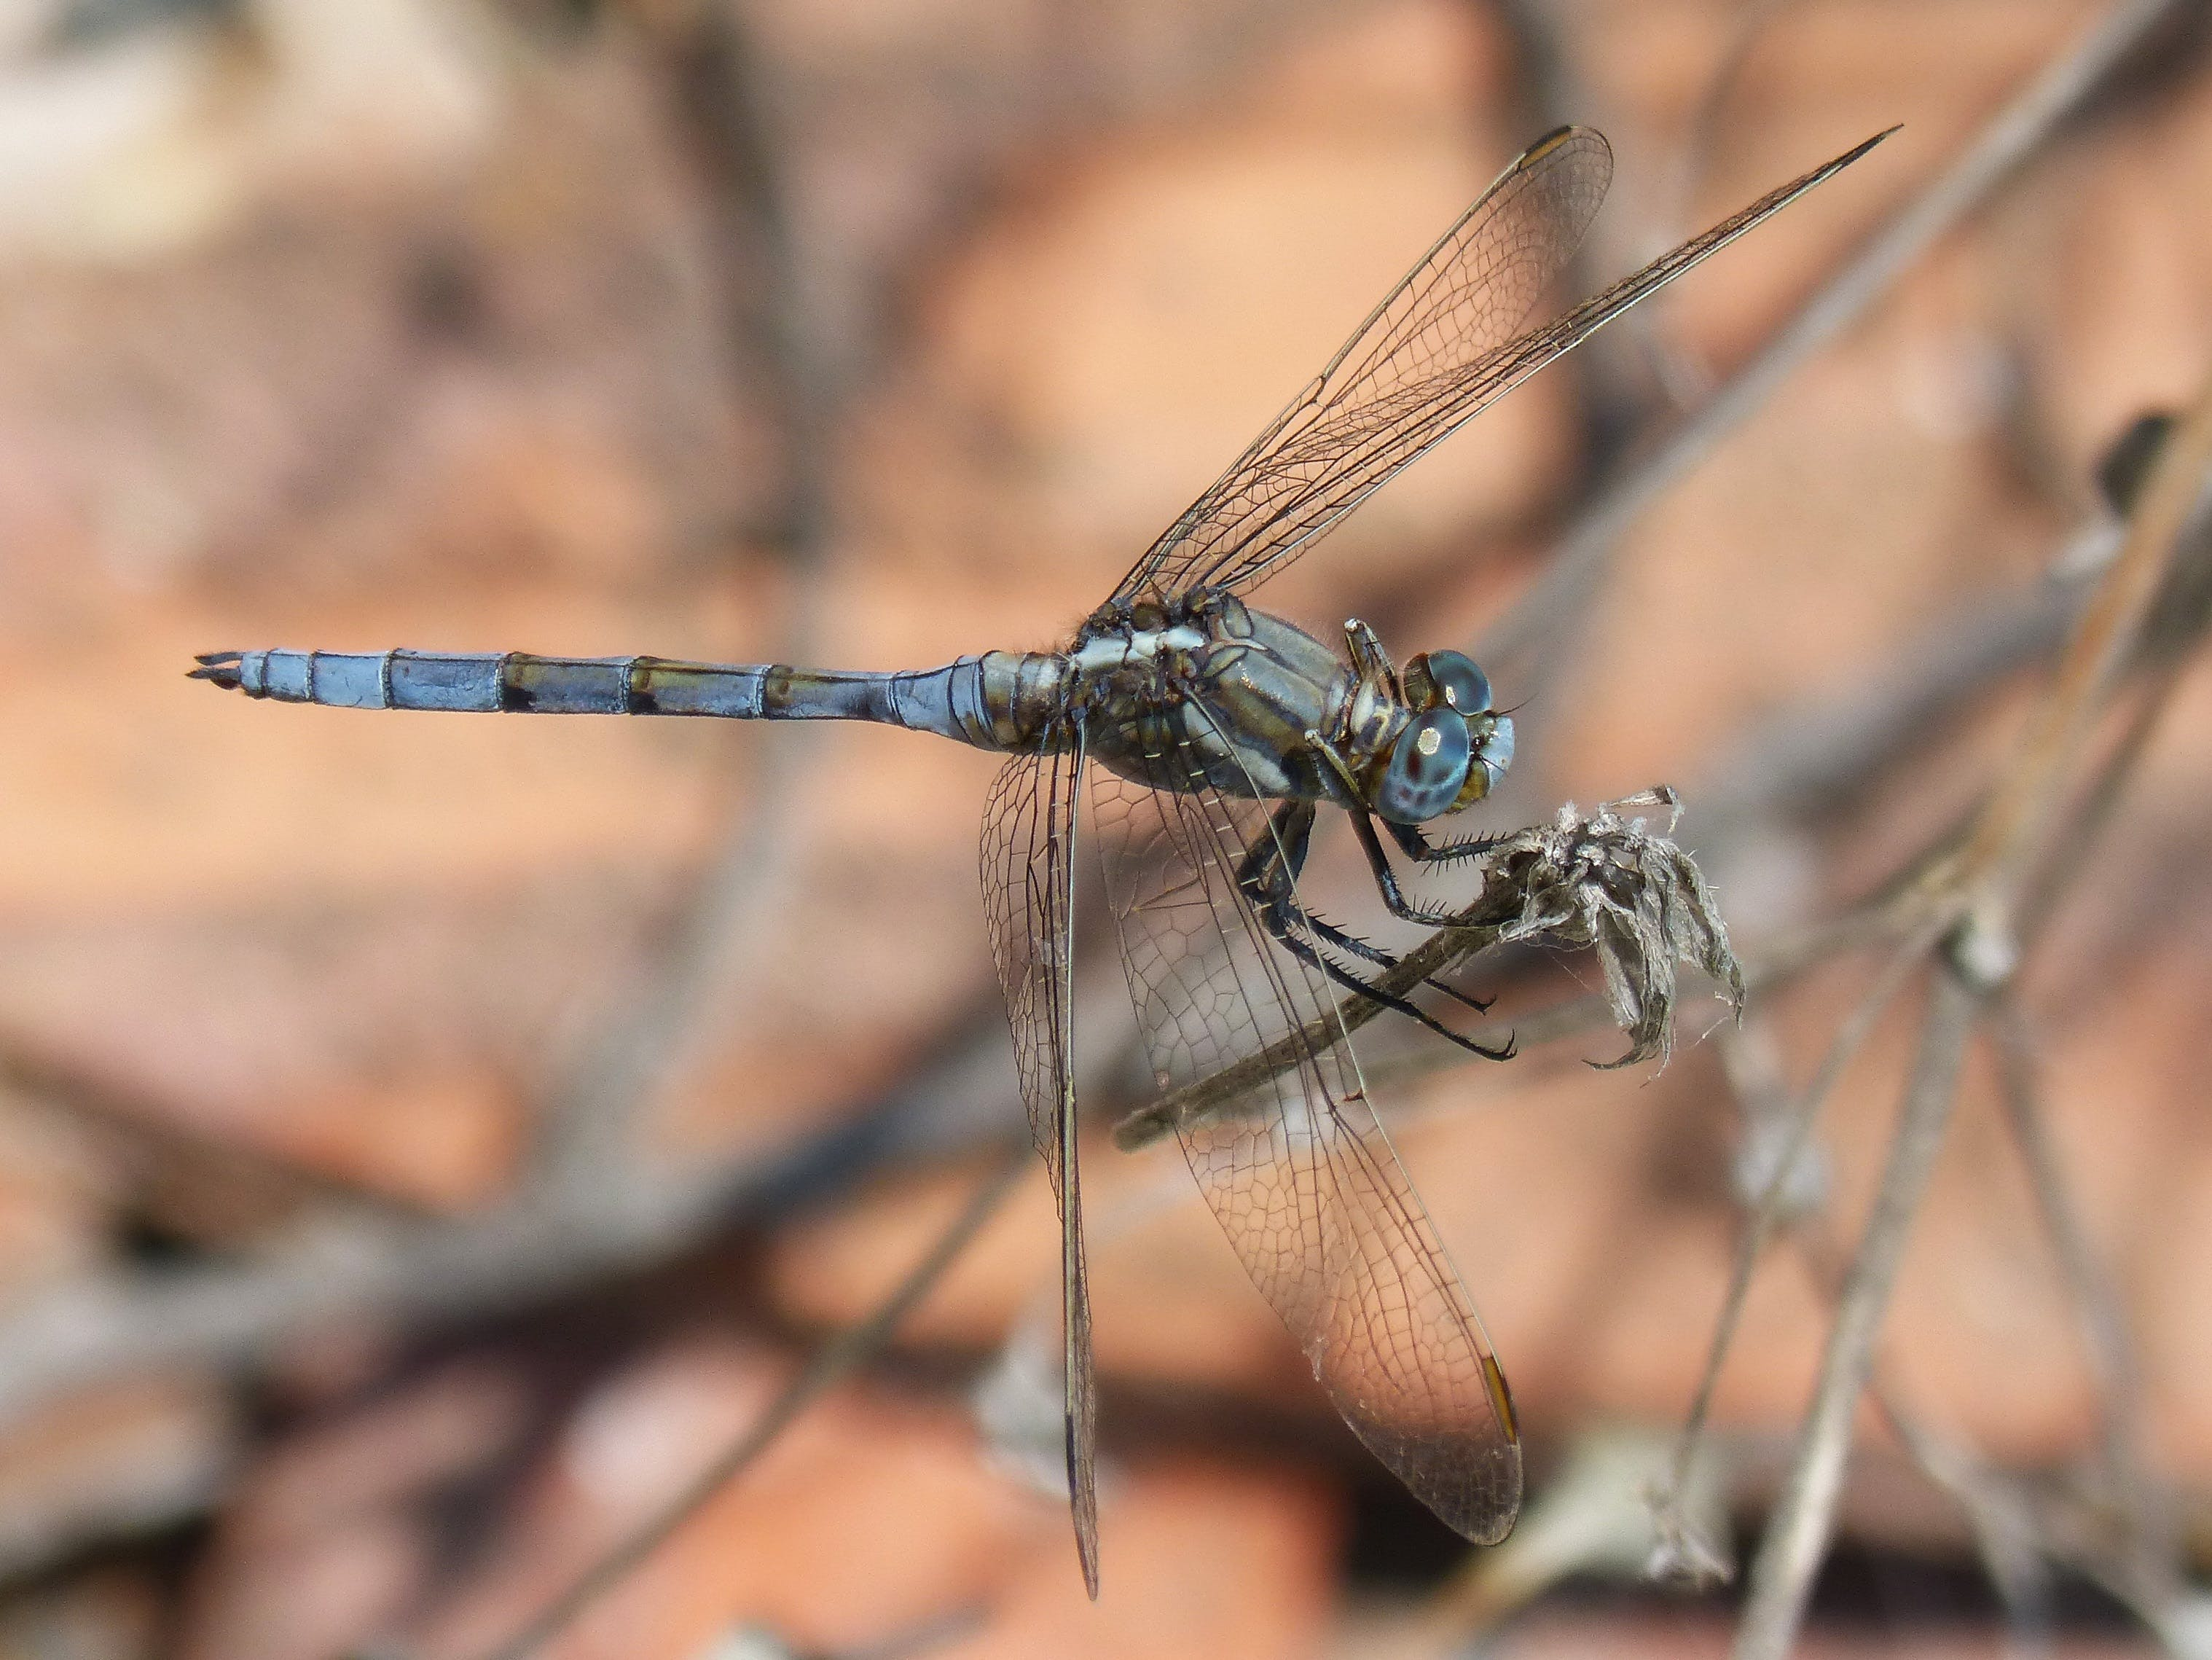 Free stock photo of dragonfly, branch, blue dragonfly, flying insect